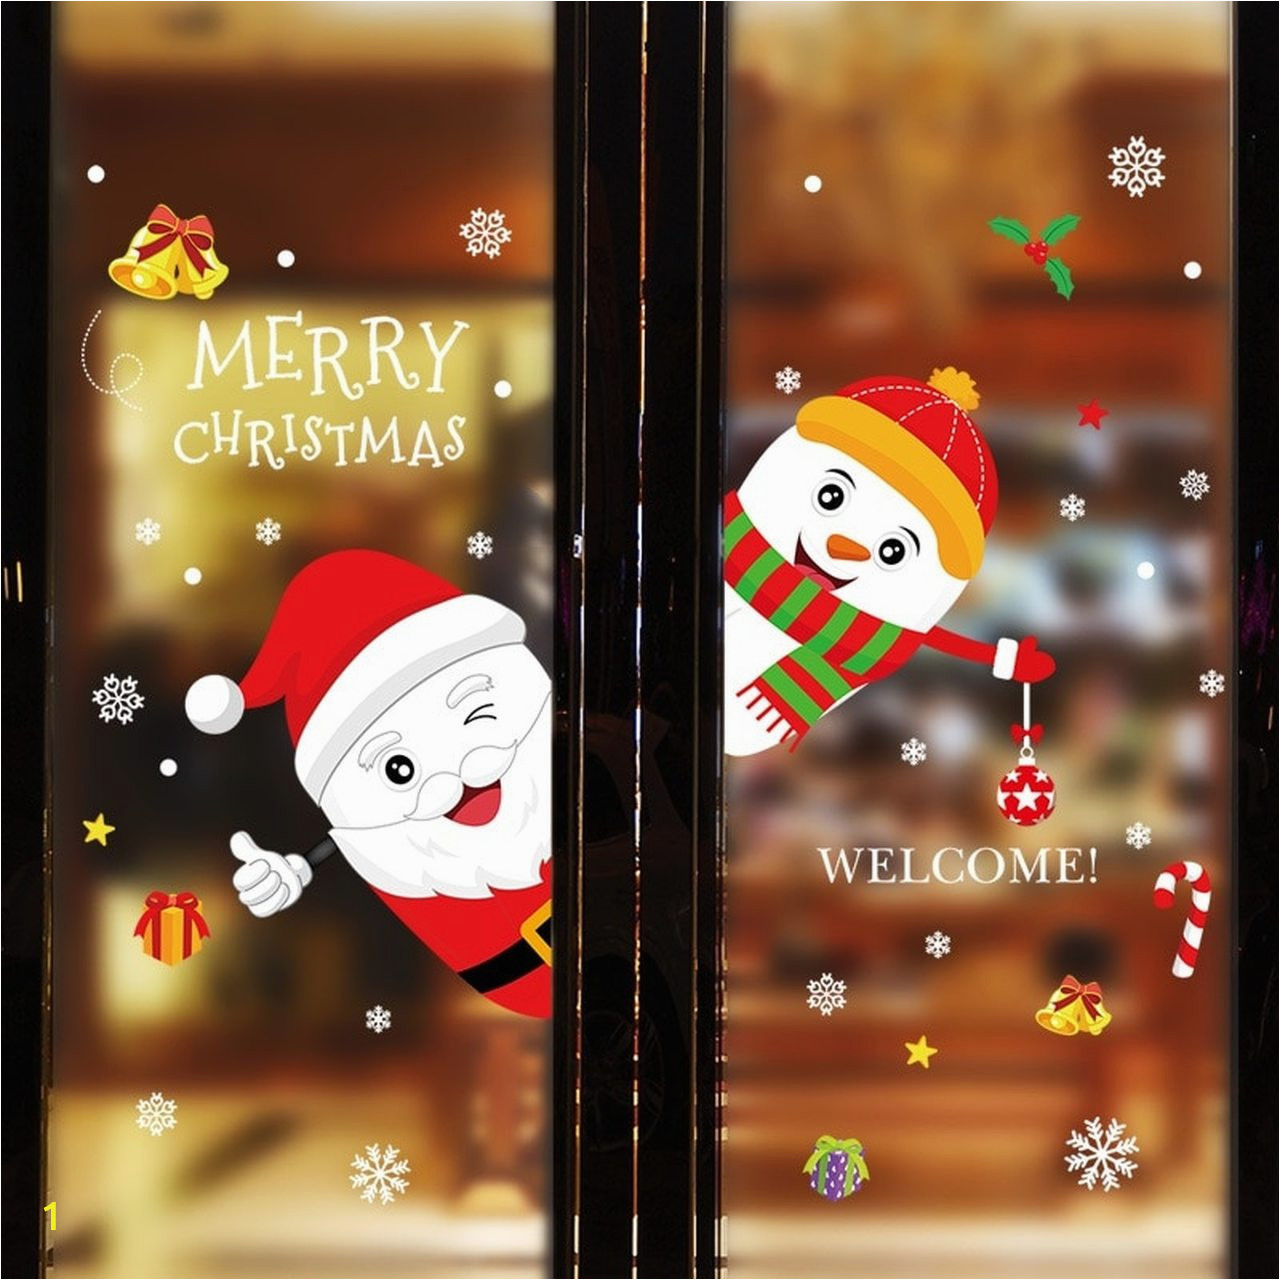 Christmas Vinyl Wall Murals Diy Merry Christmas Wall Stickers Window Glass Festival Decals Santa Murals New Year Christmas Decorations for Home Decor New